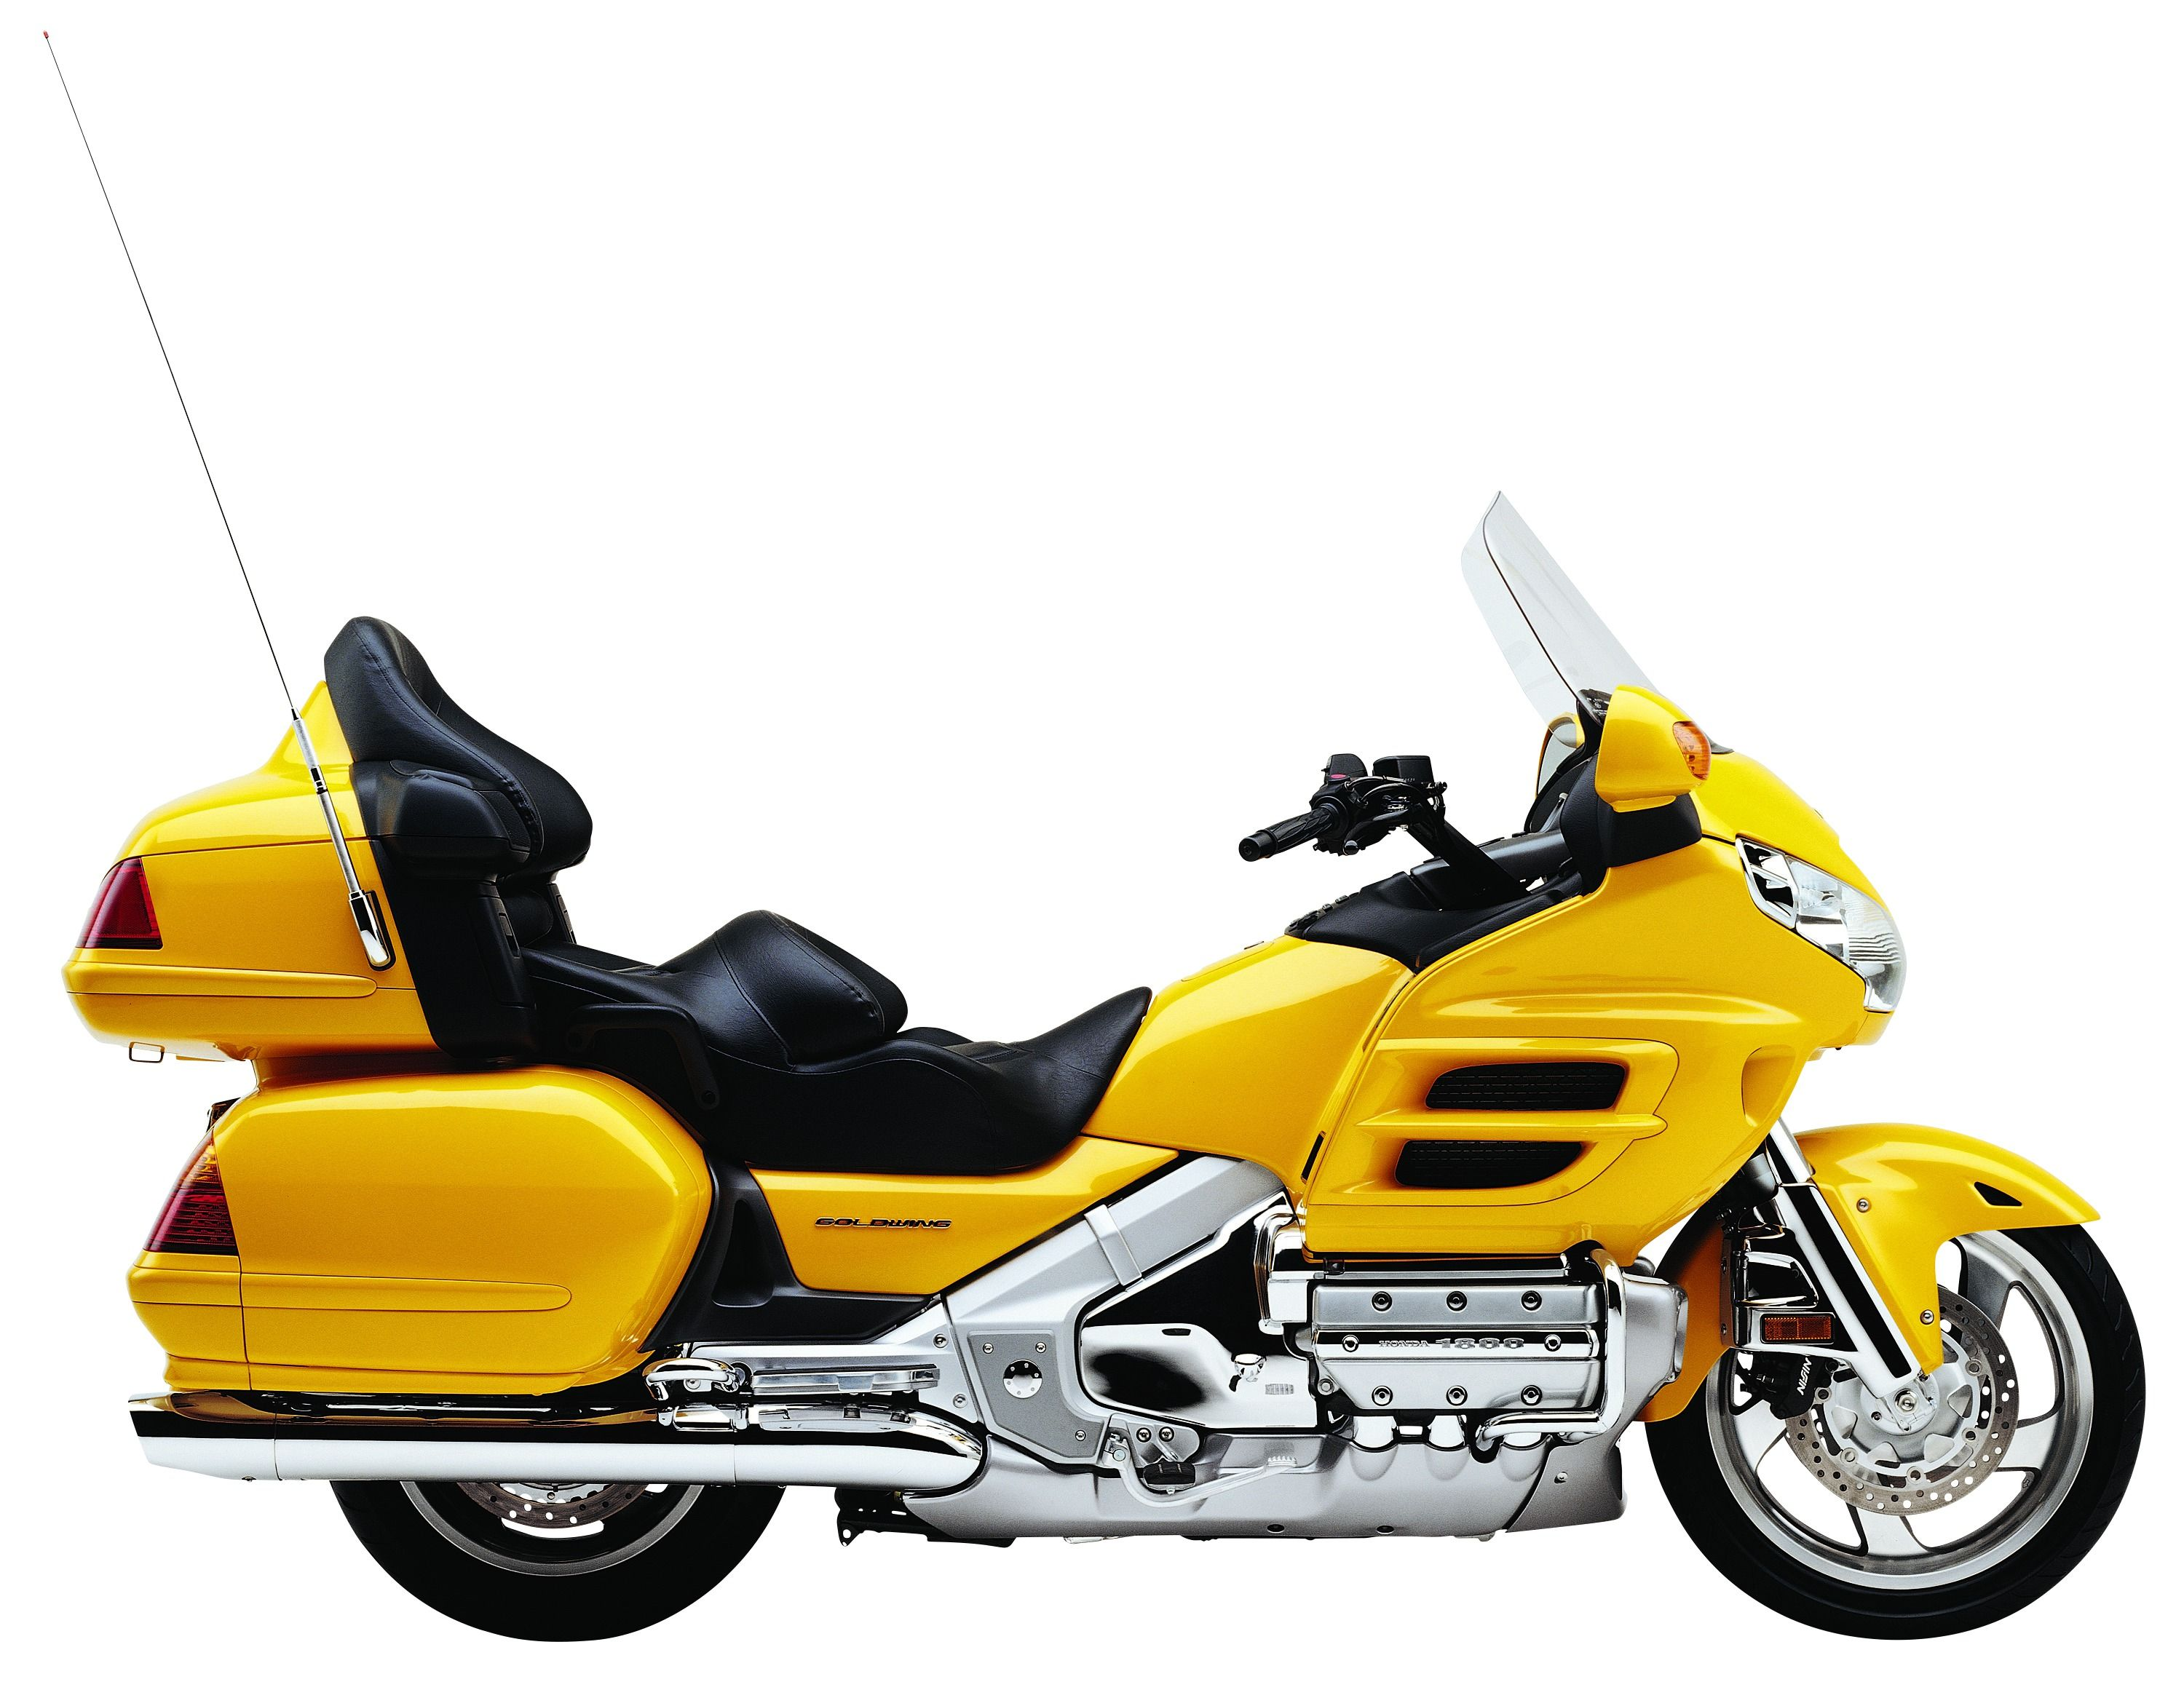 road sofa seat goldwing backrest design the 2018 honda gold wing is history revved up